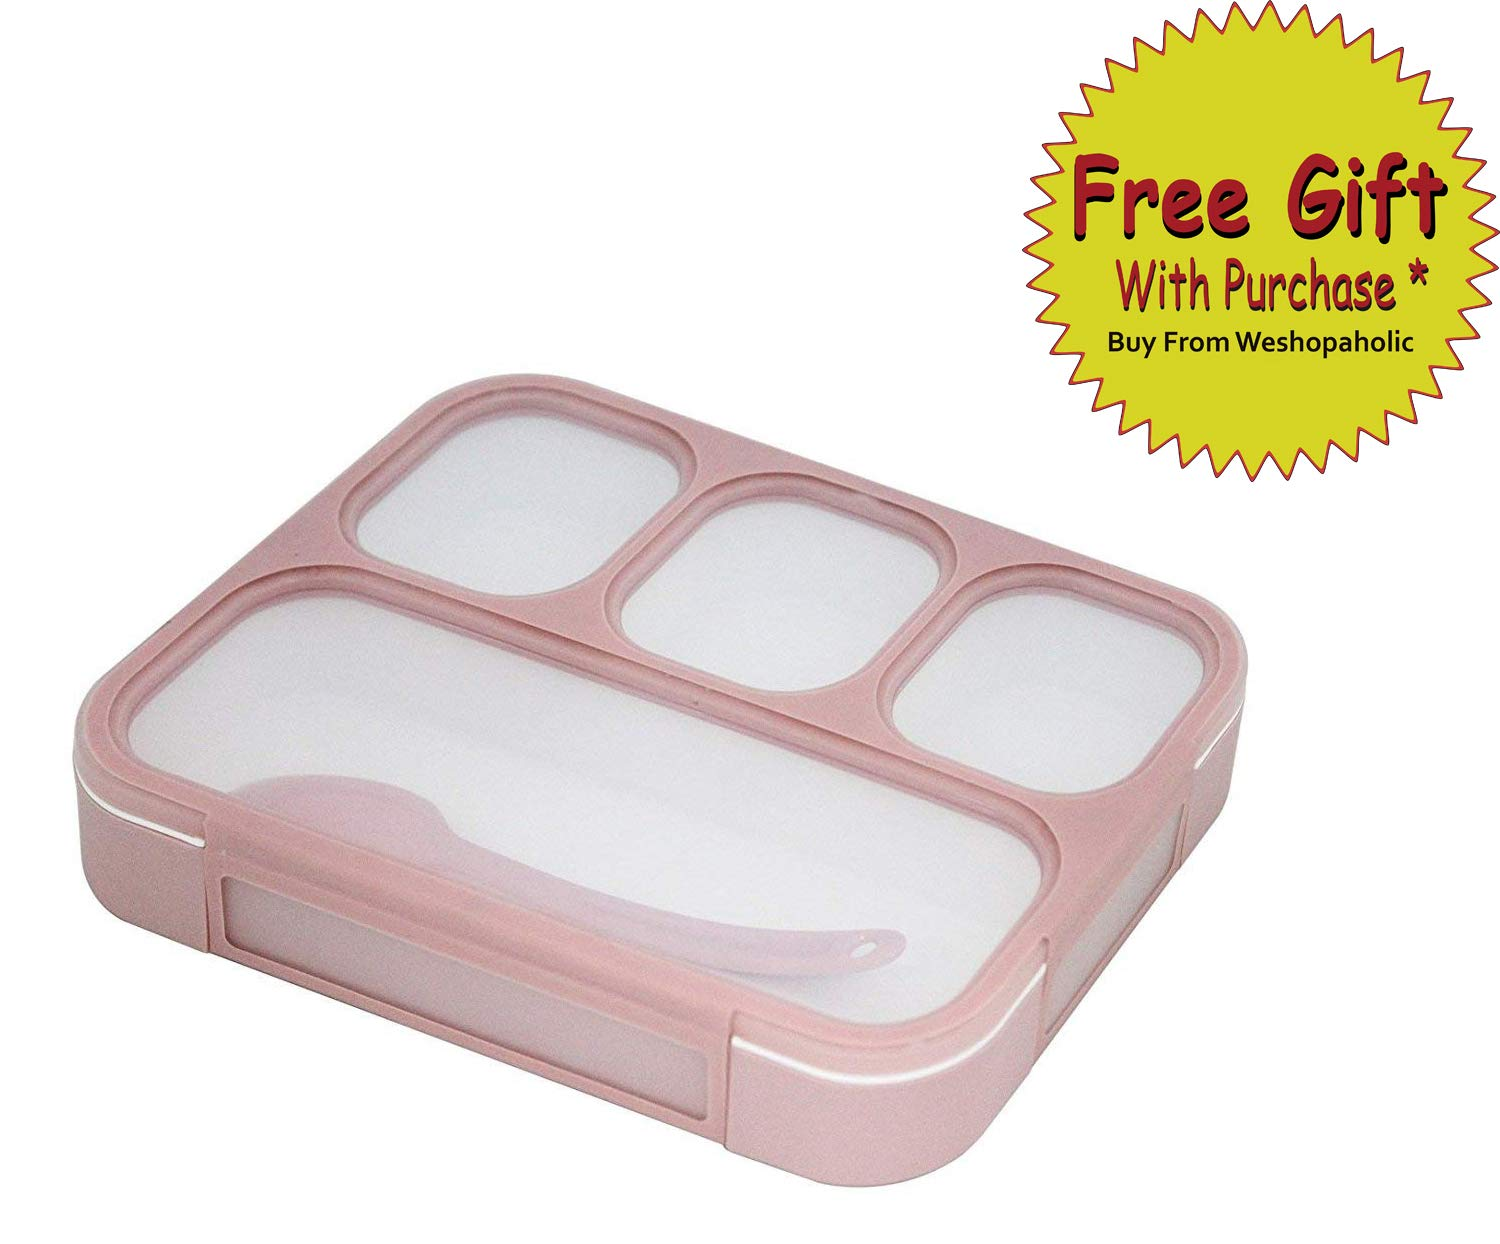 Shopaholic Plastic Innovative and Durable Lunch Box with 4 in 1 Slots (pink grid lunch box578)